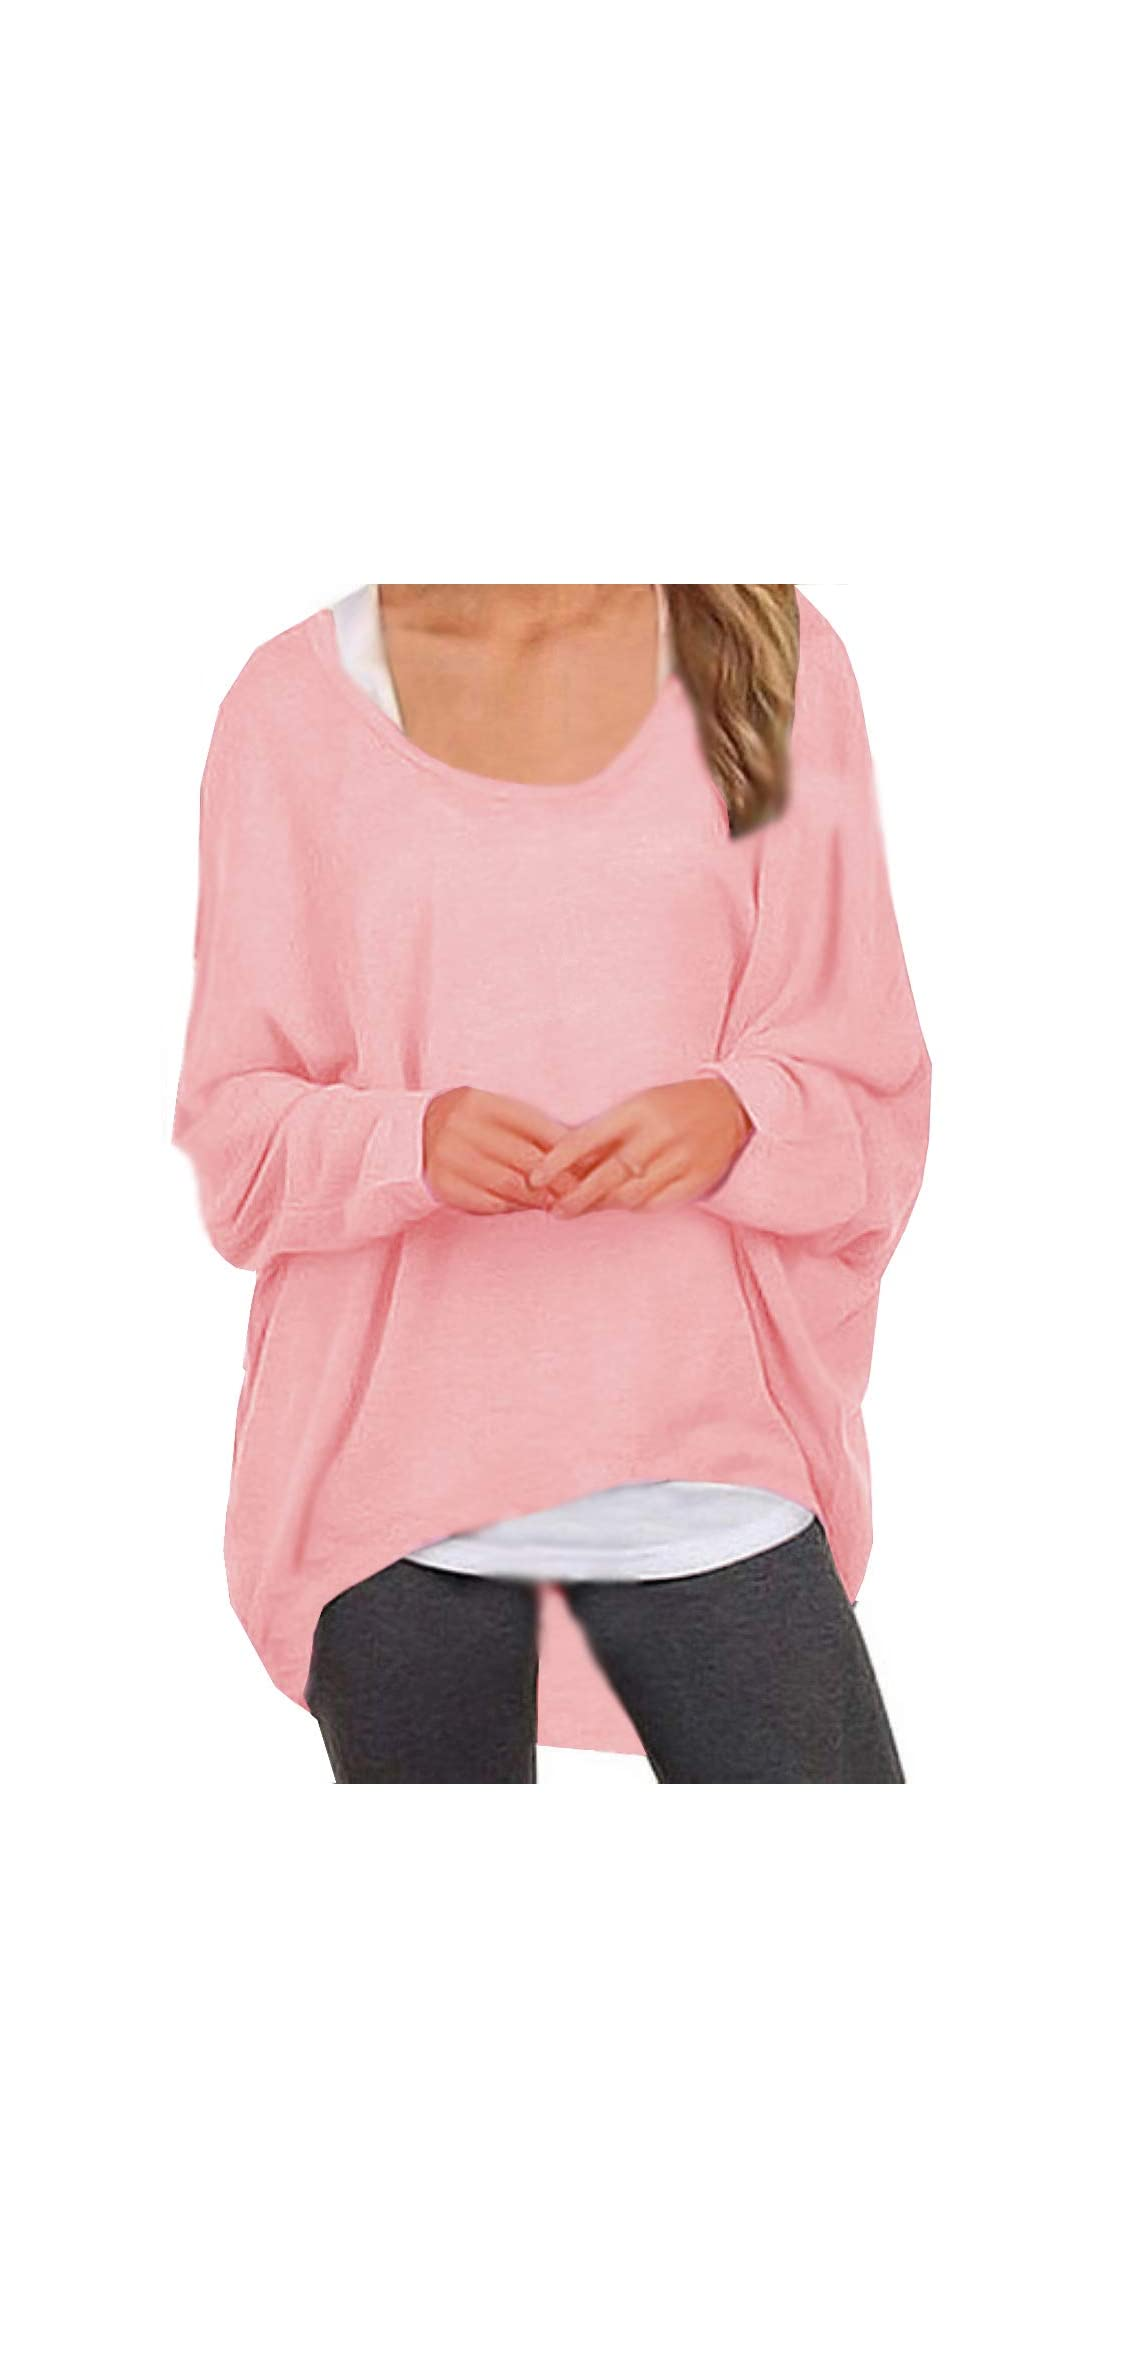 Women's Sweater Casual Oversized Baggy Loose Fitting Shirts